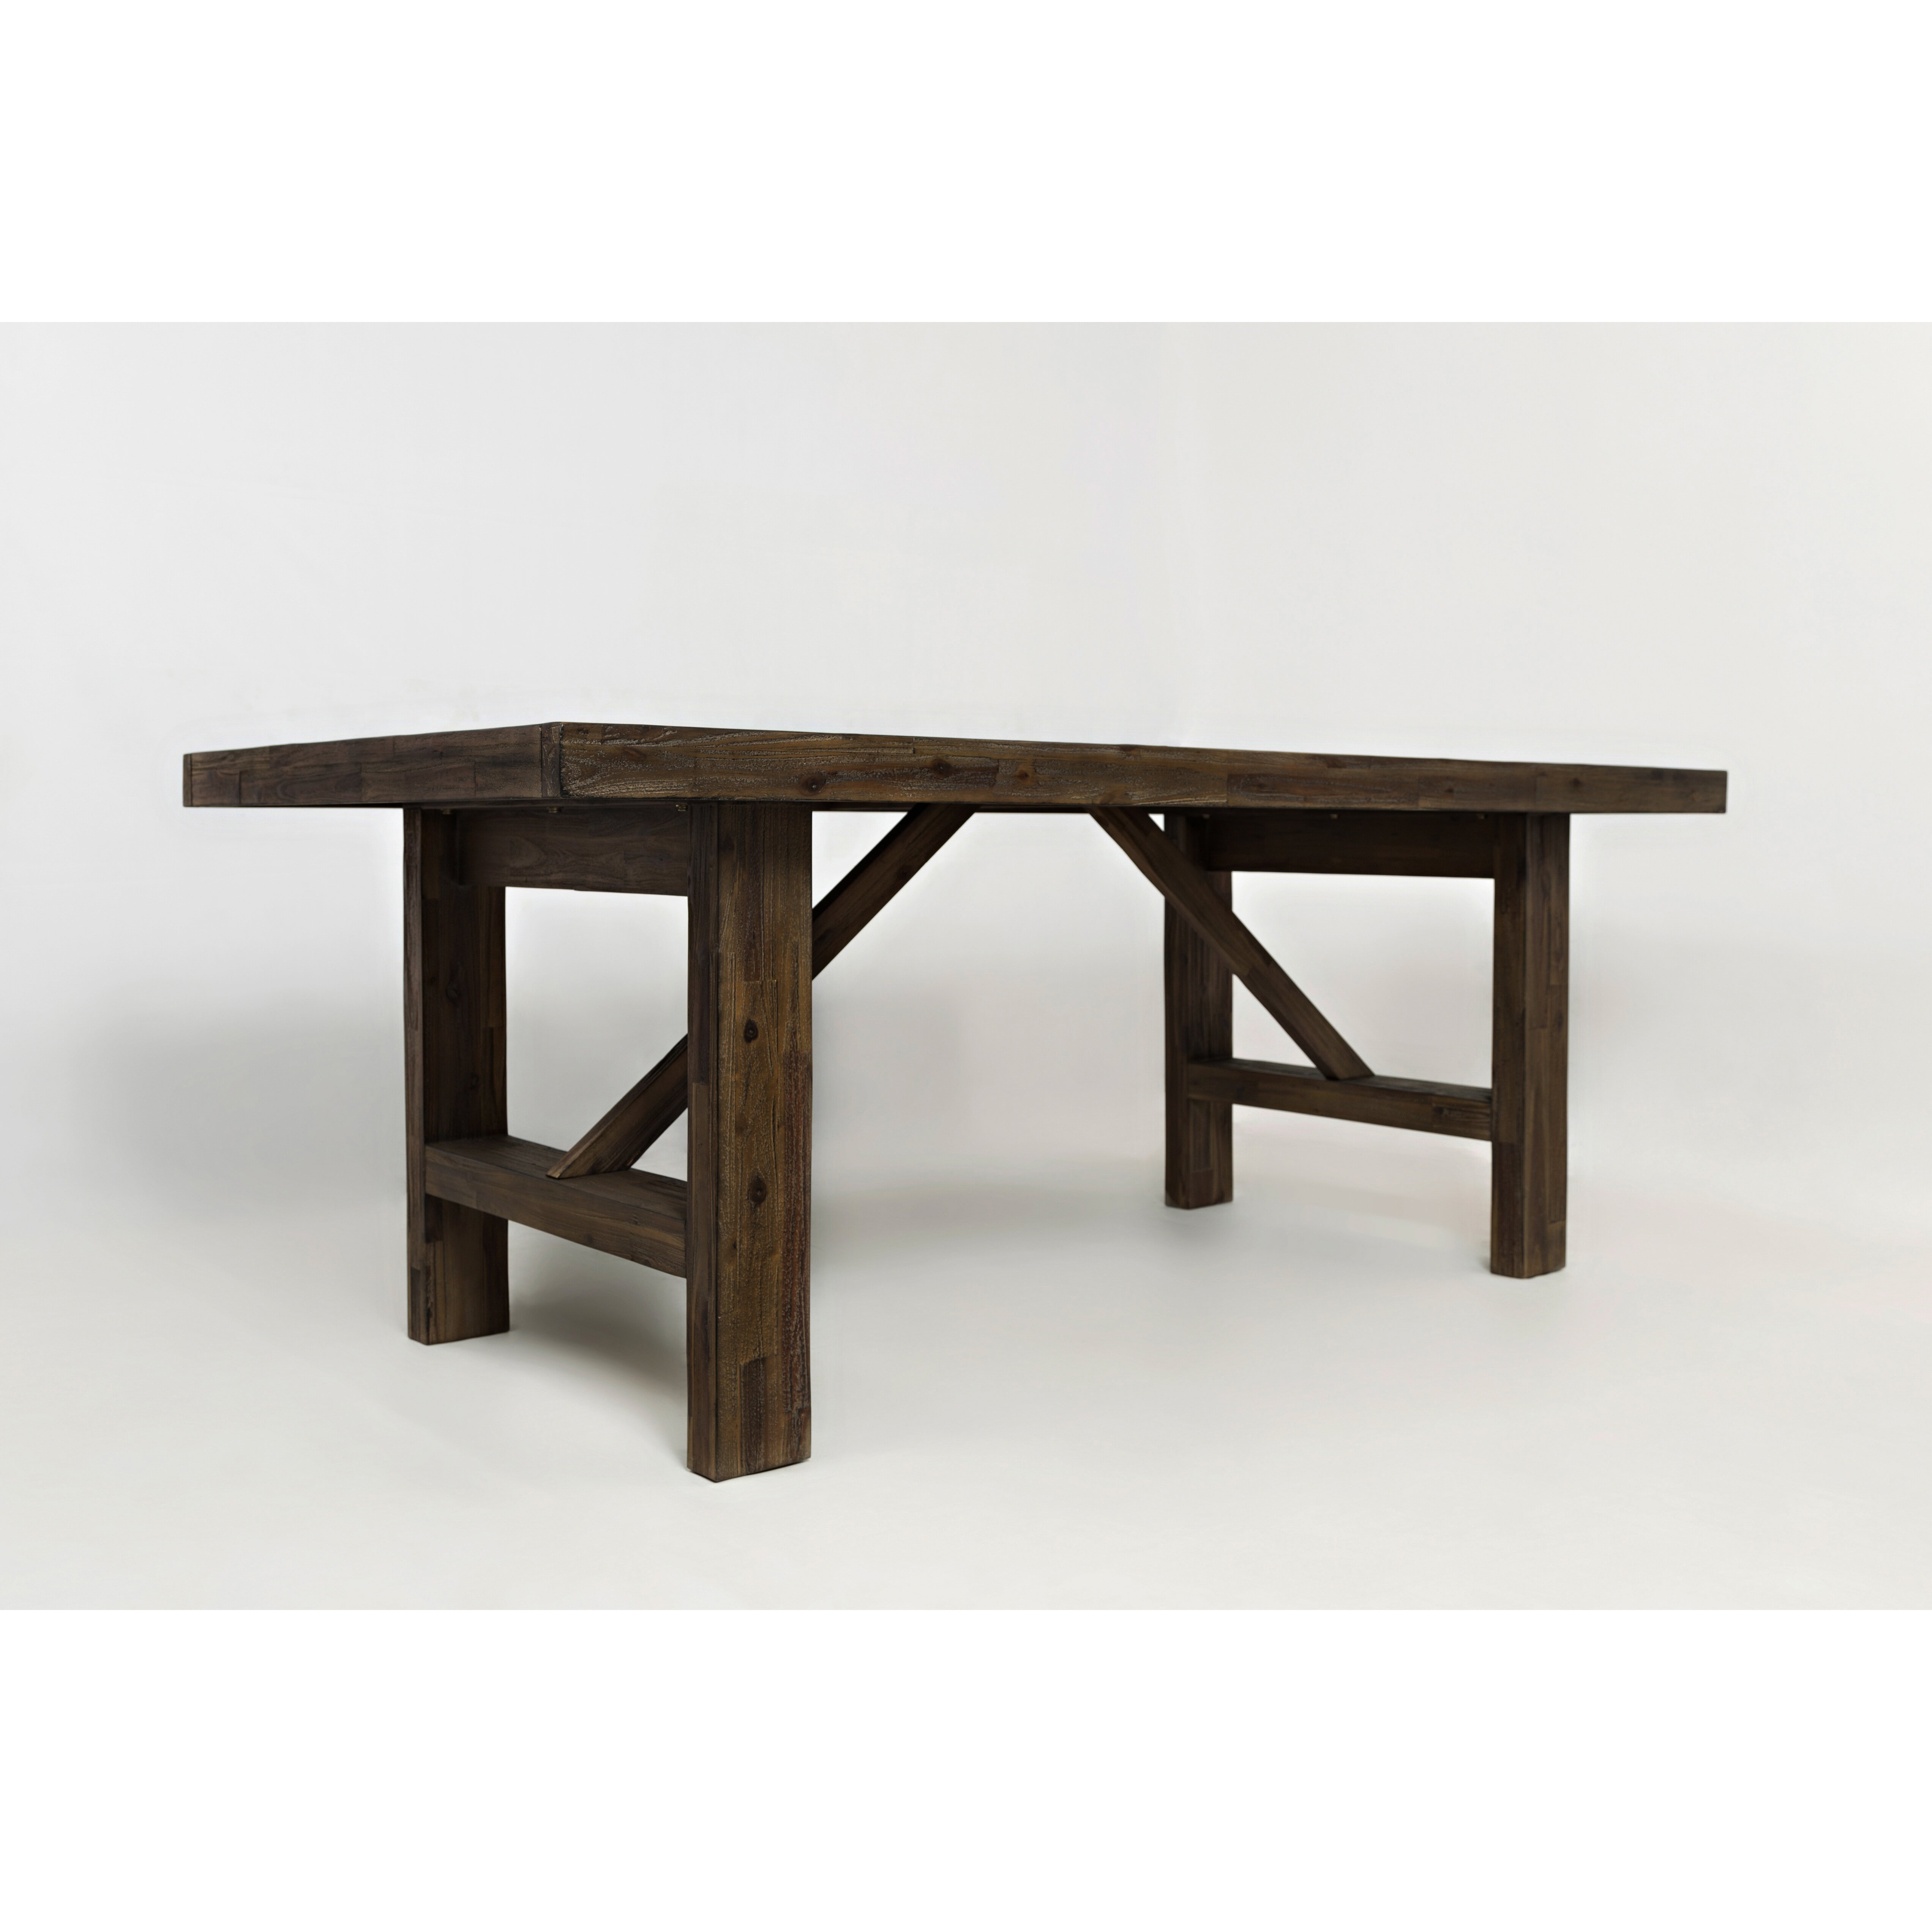 Laurel Foundry Modern Farmhouse Kara Dining Table